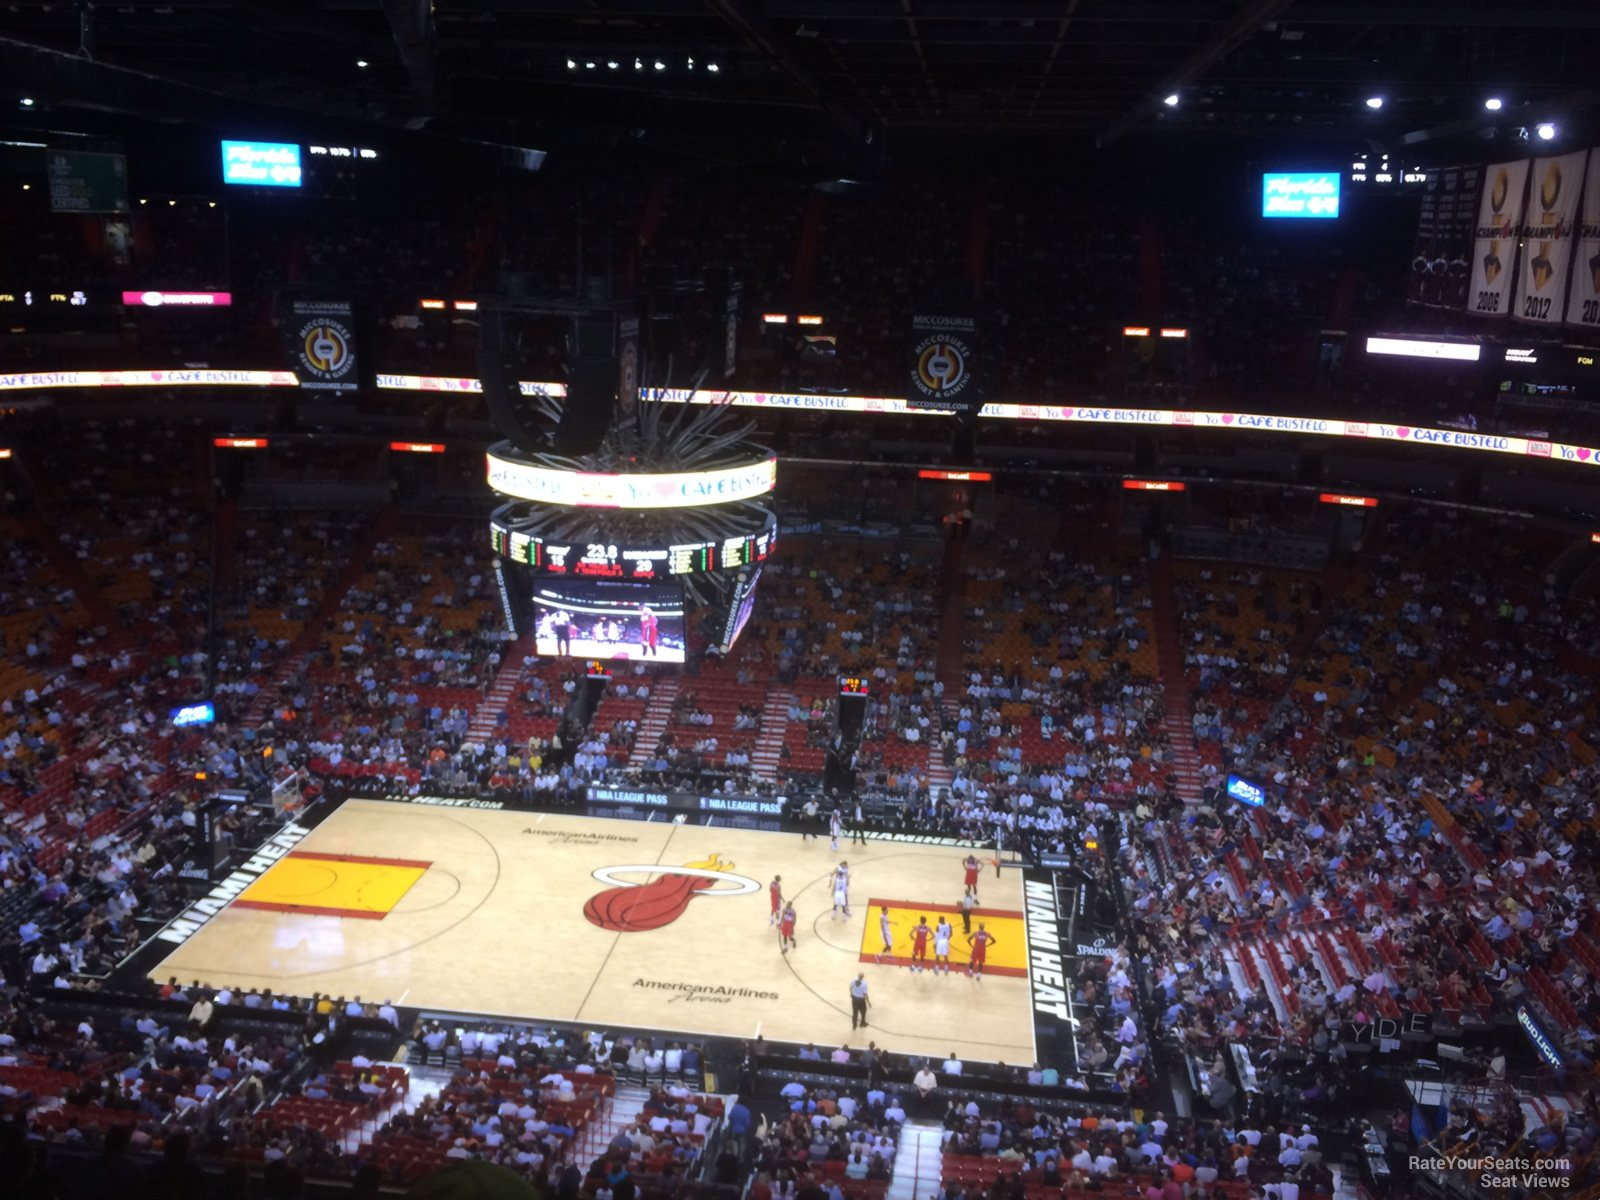 300 Level Center Americanairlines Arena Basketball